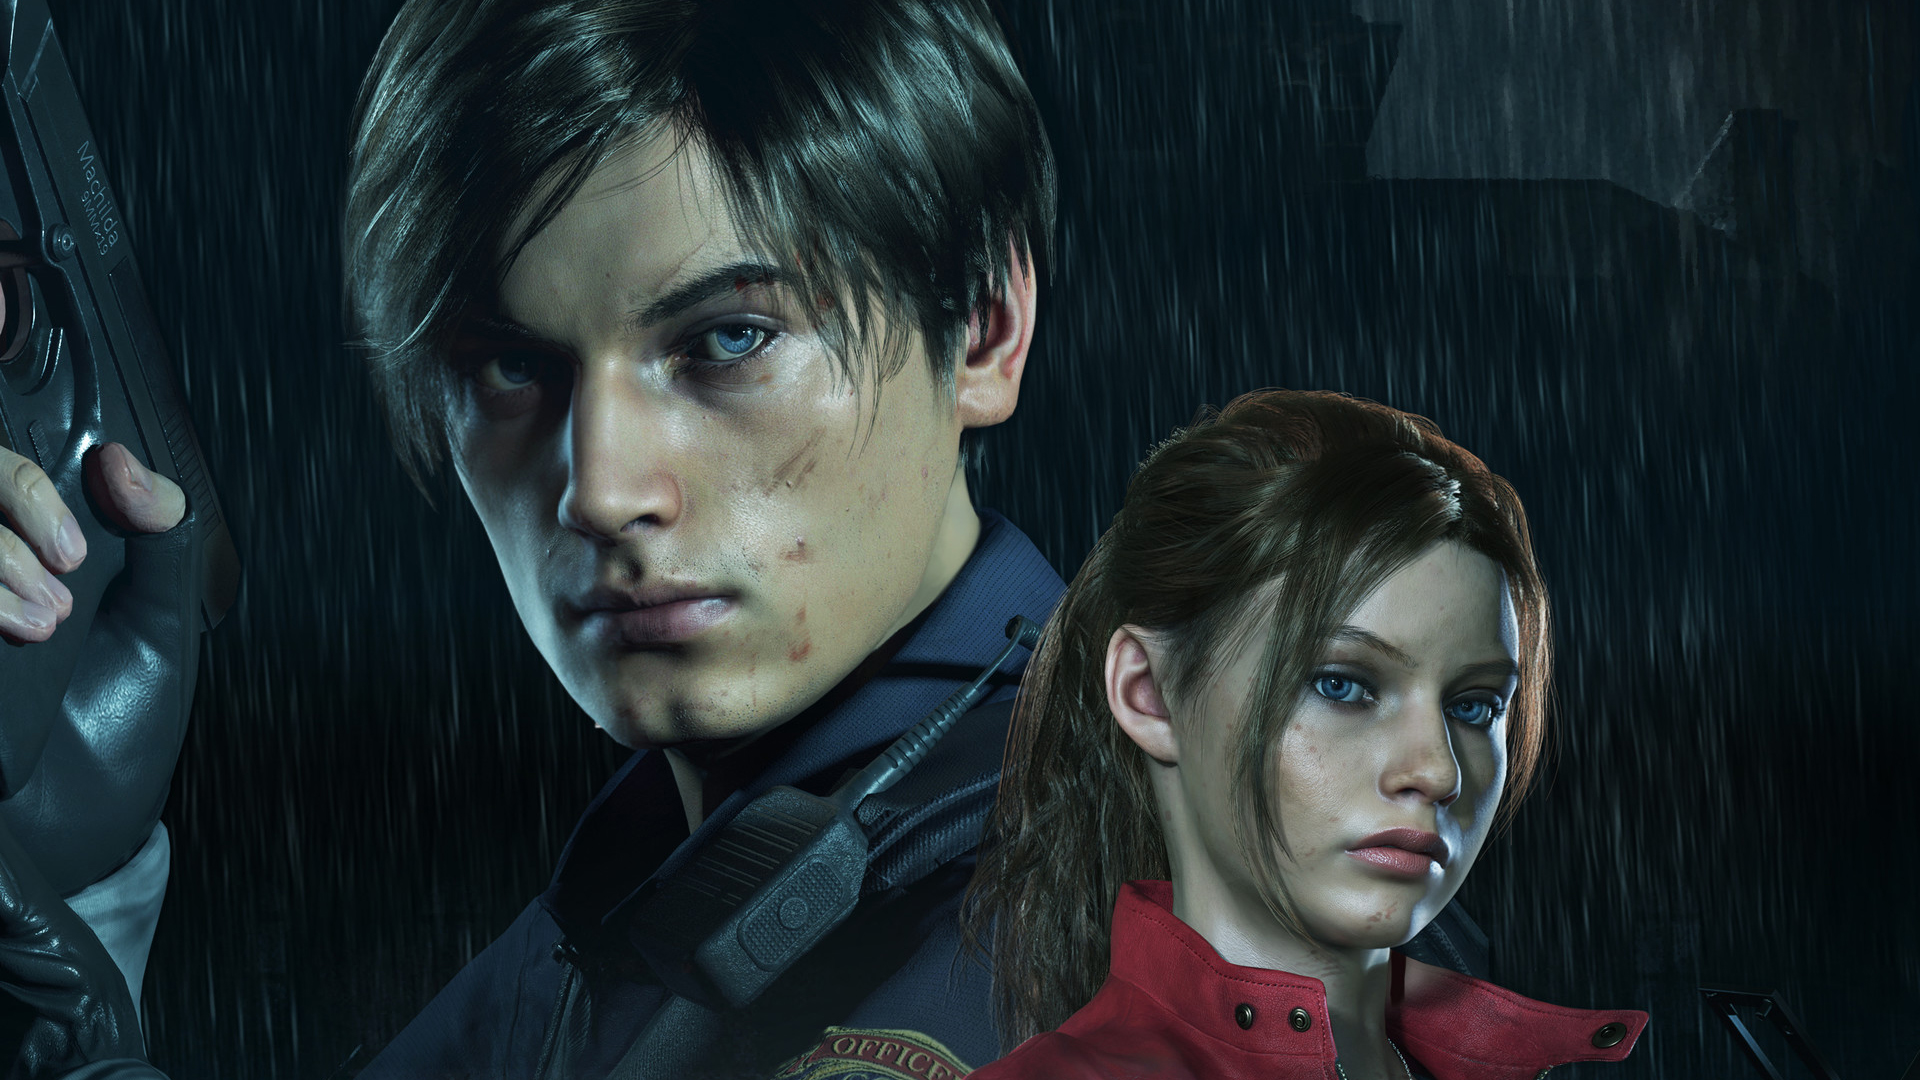 Pubg Resident Evil Wallpaper: Leon And Claire In Resident Evil 2, HD Games, 4k